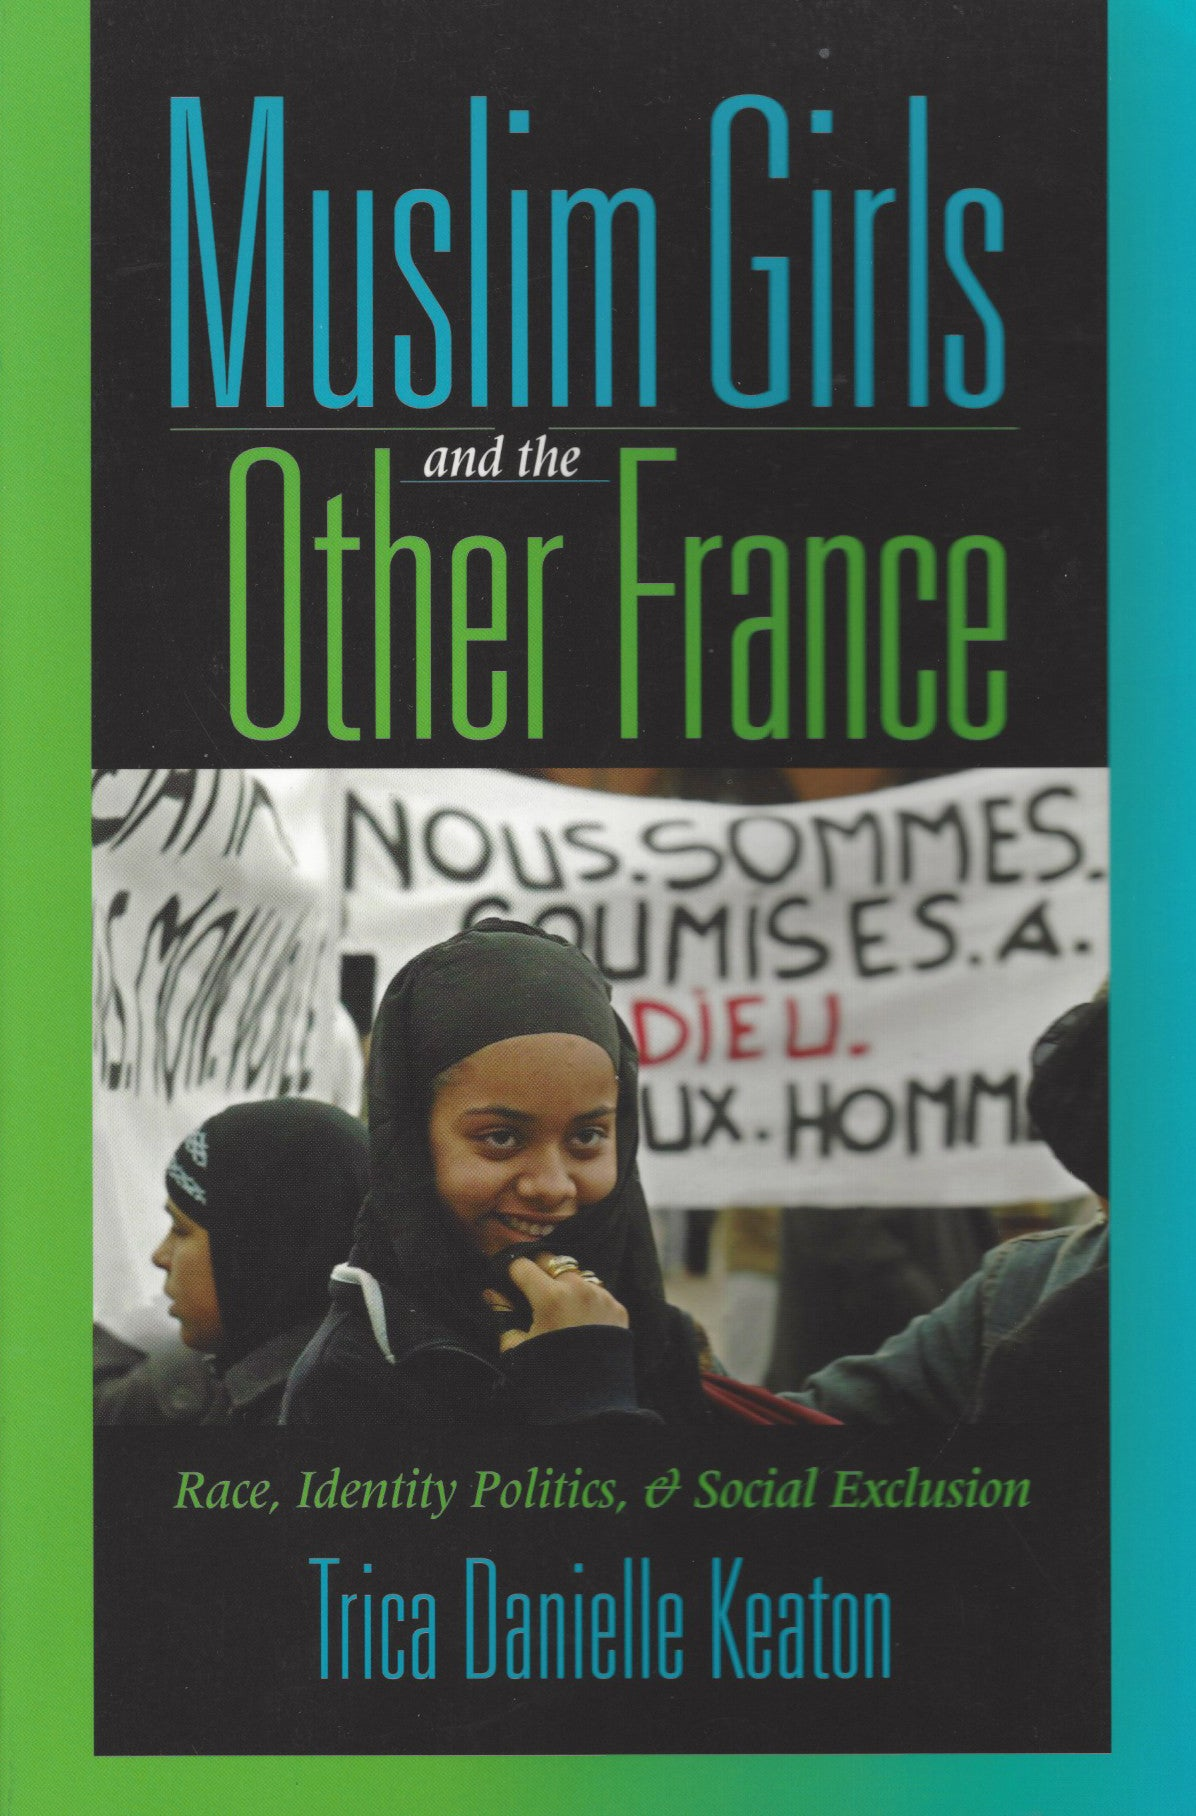 Muslim Girls and the Other France: Race, Identity Politics, & Social Exclusion , Book - Daybreak International Bookstore, Daybreak Press Global Bookshop